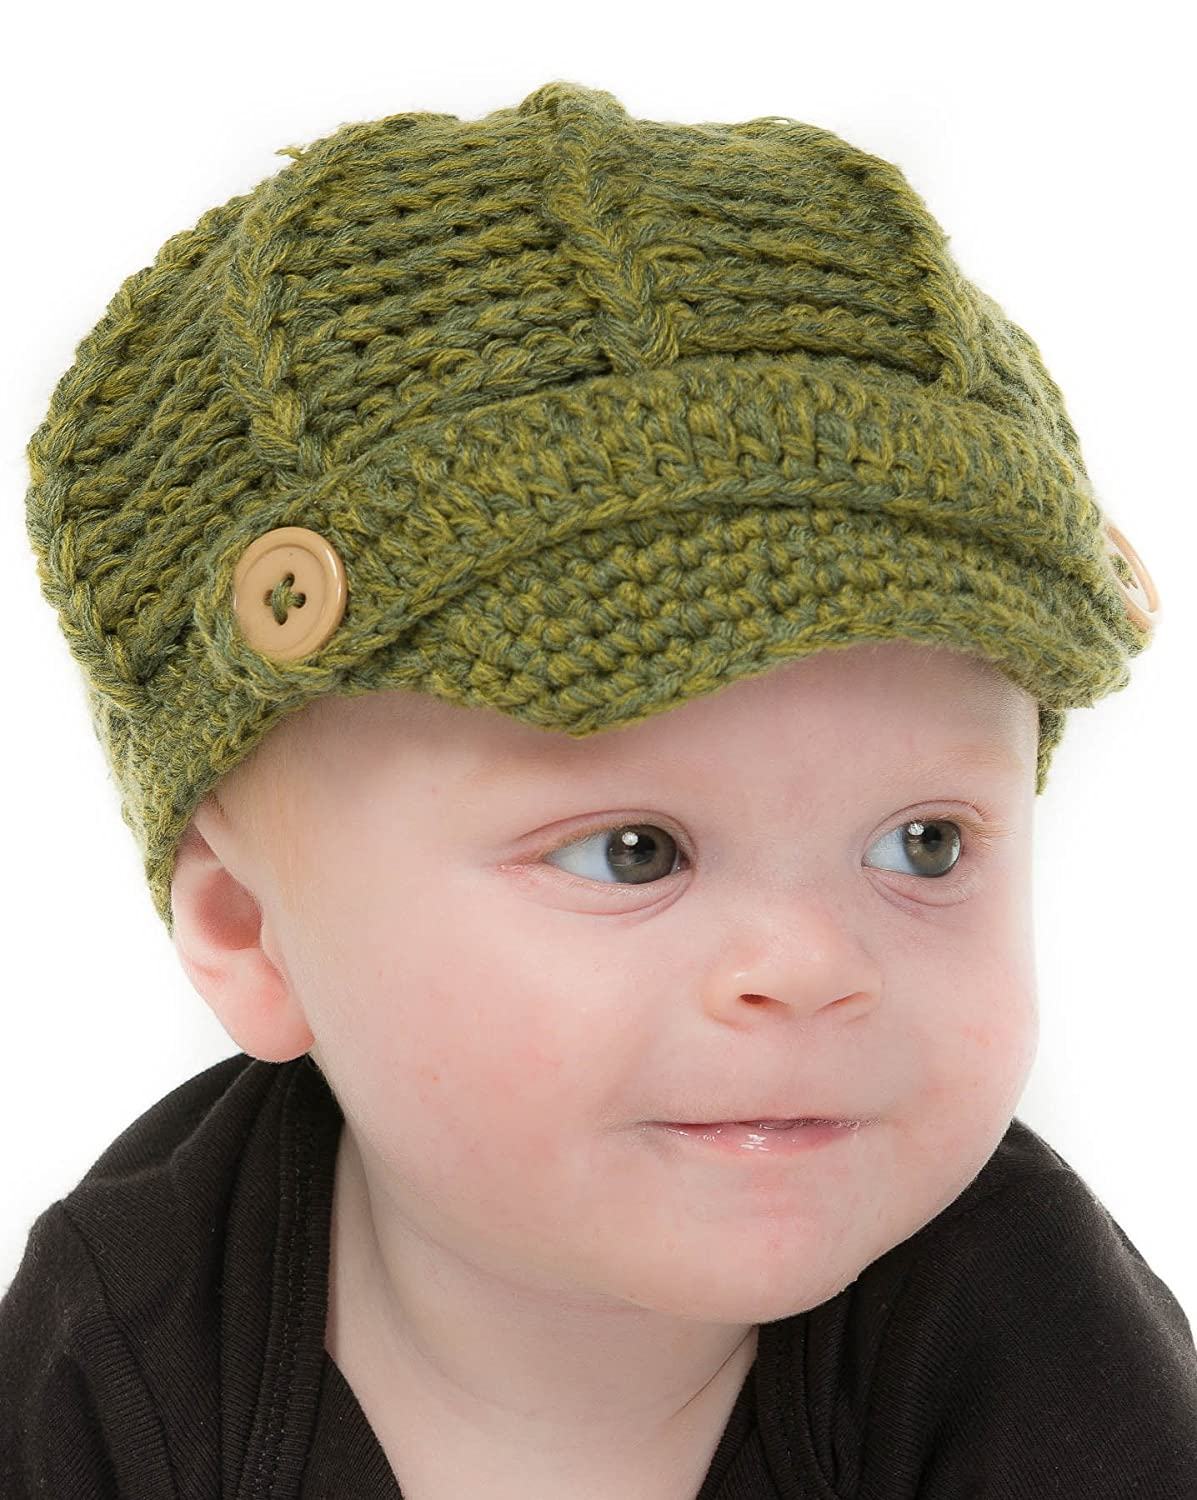 Knitted baby hats are an essential accessory, and most of them are quick and easy to make for knitters of any experience level. We have a variety of free knitting patterns for baby hats, including beanies, pixie hats, earflap hats, preemie hats, cute animal hats and more. Knitted hats .